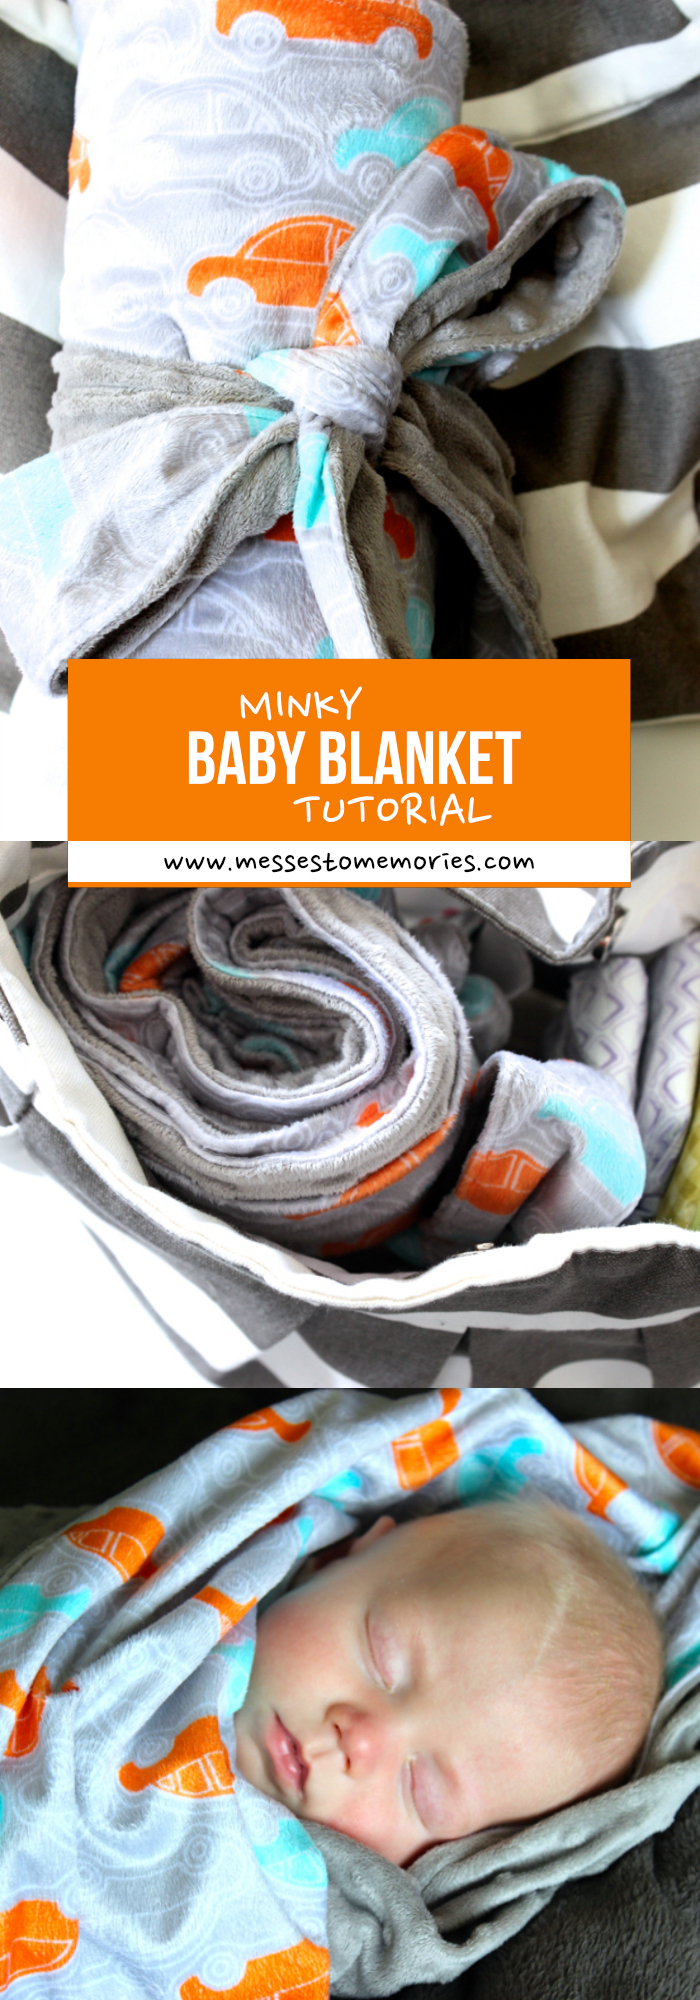 This baby blanket tutorial is the best I've seen! What an adorable and functional blanket!